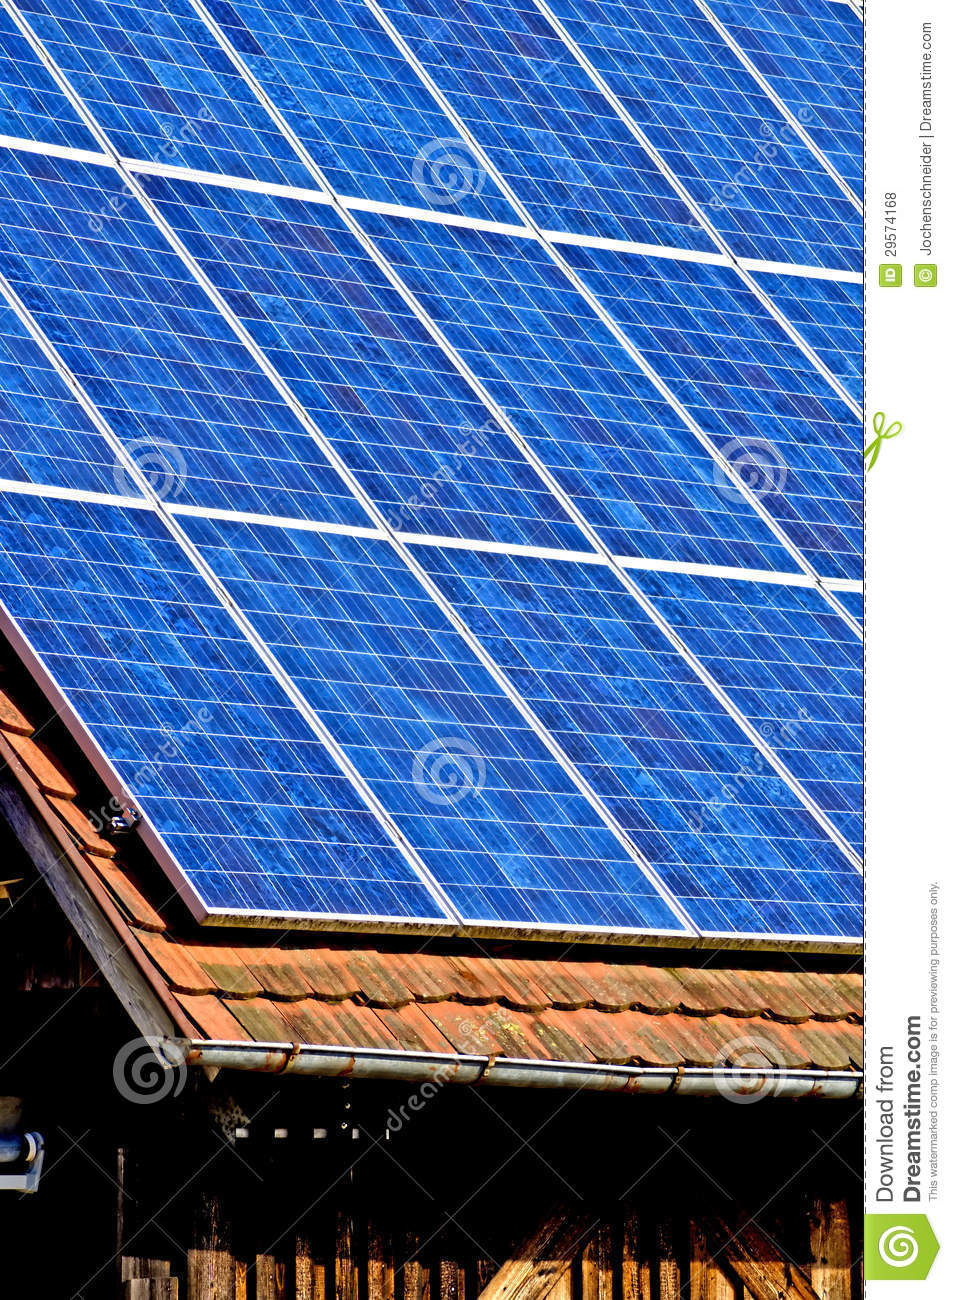 Solar Panel On Old Cabin Roof Royalty Free Stock Image